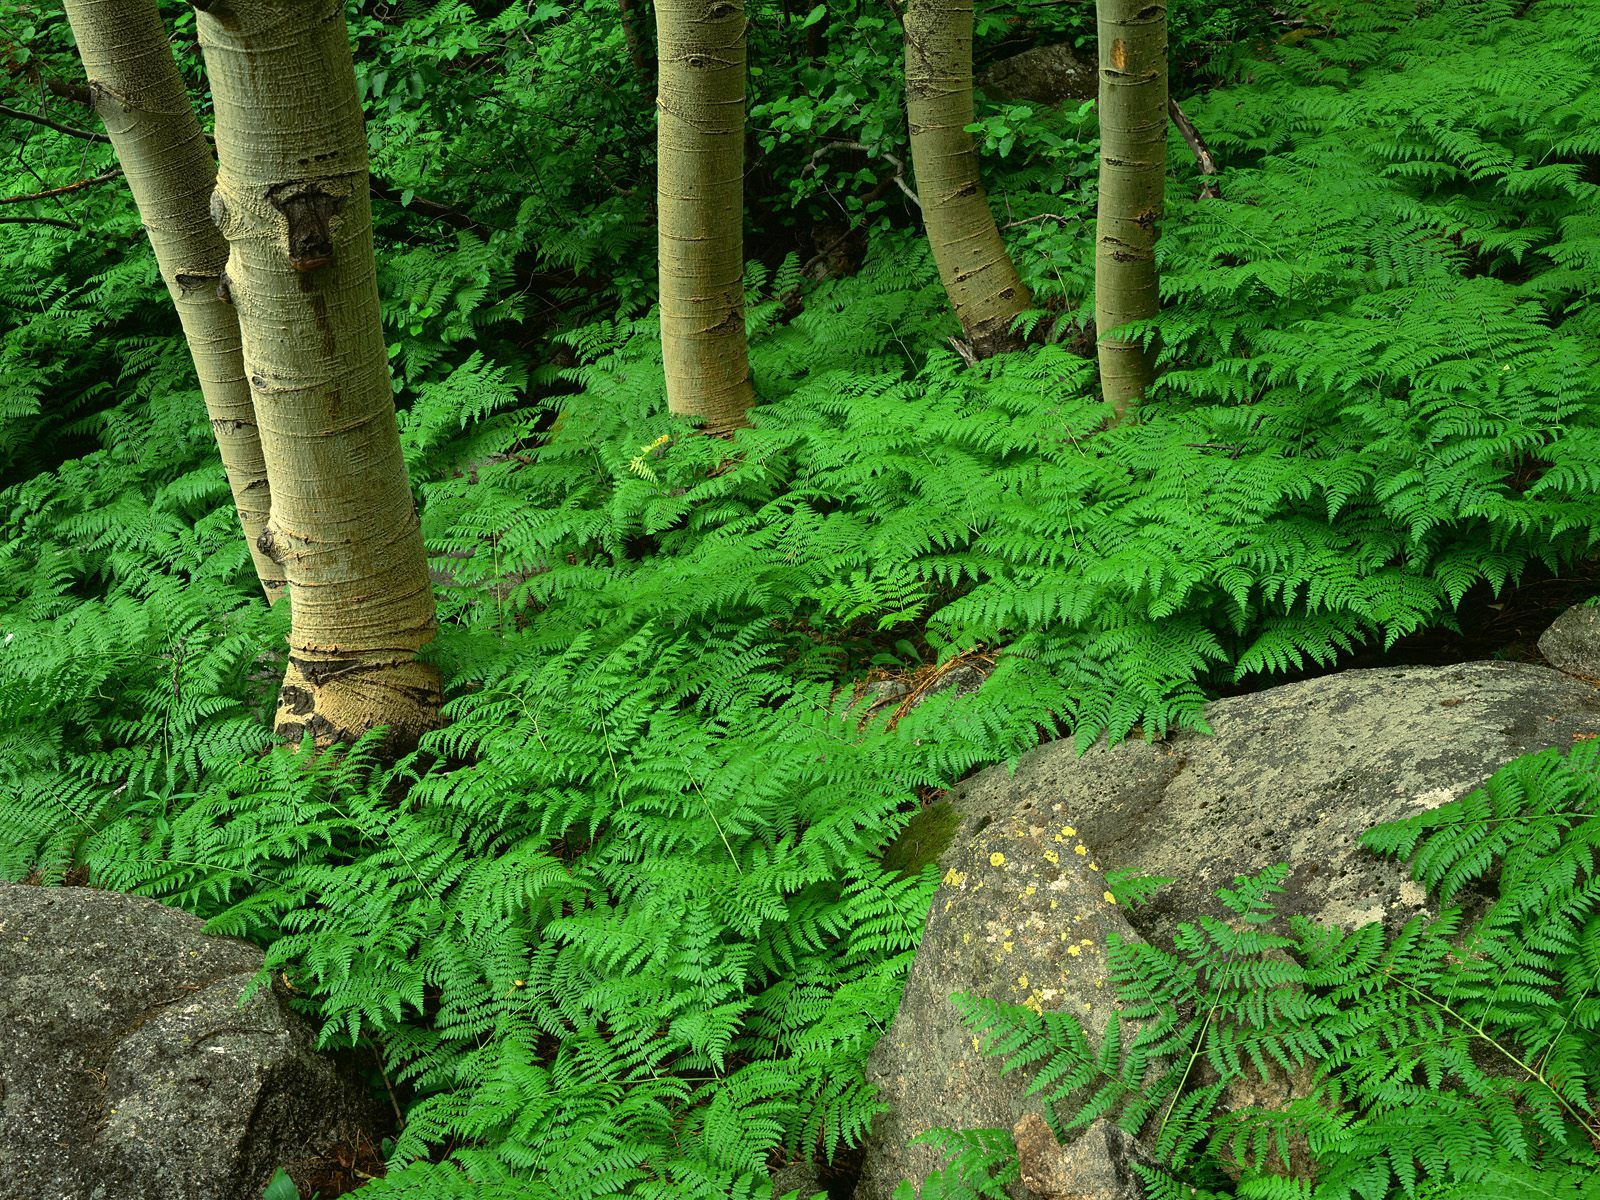 green forest images wallpaper photos picture mobile download